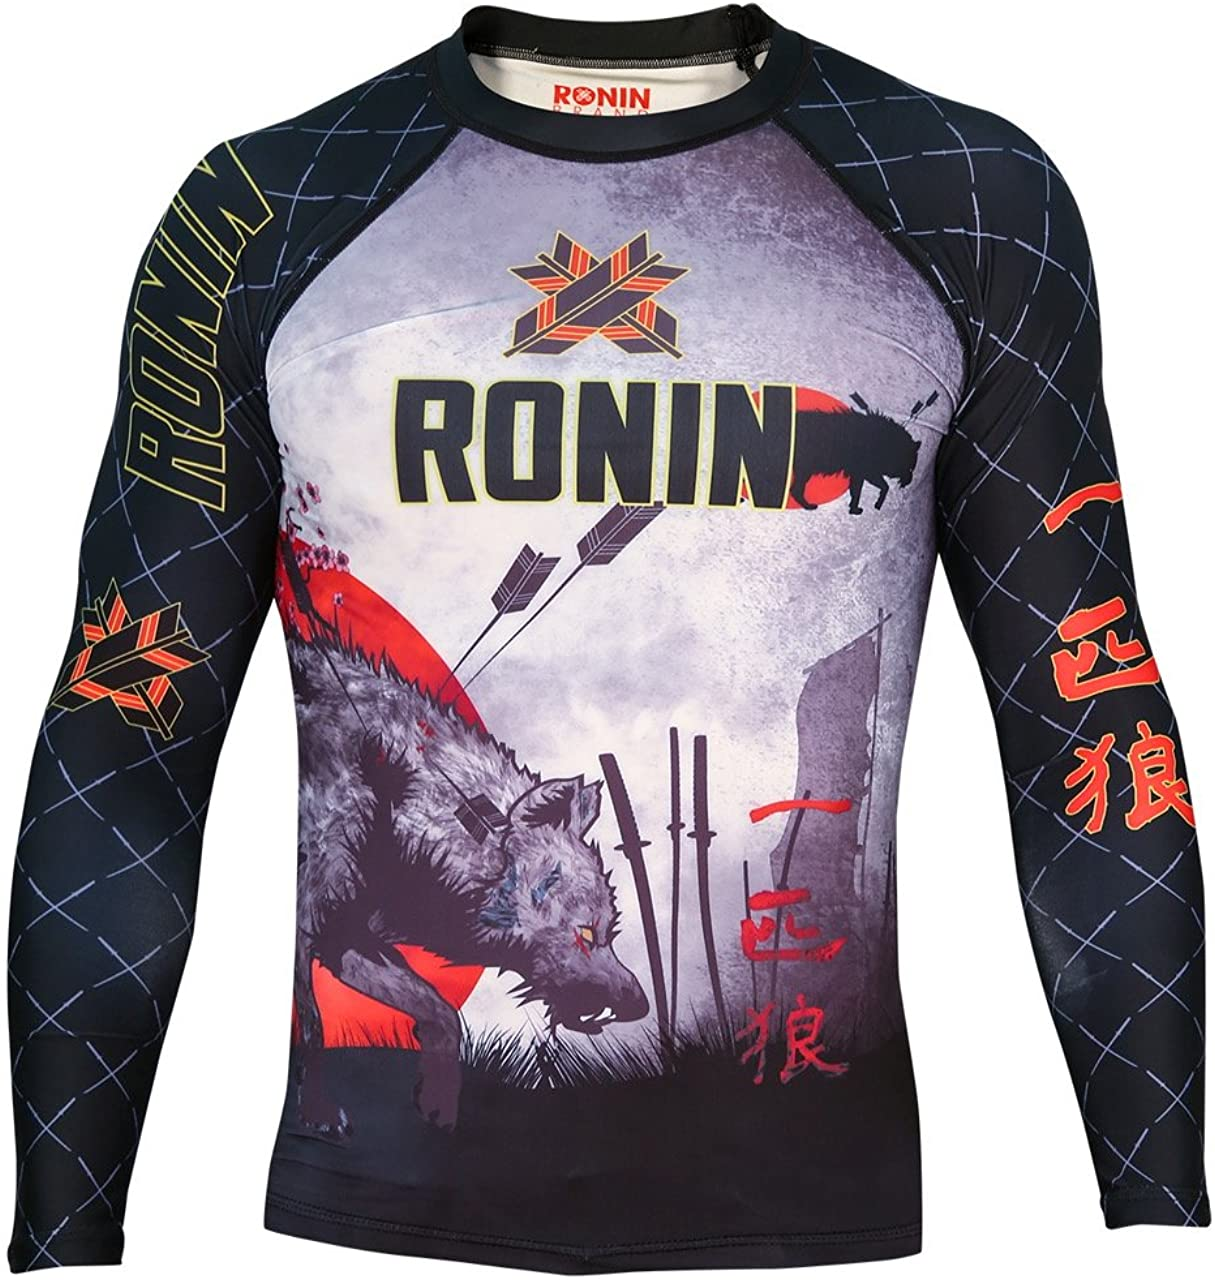 Ronin Brand Compression Long Sleeve Shirt - Baselayer Shirt for MMA, BJJ, Running - Thermal Top - Lone Wolf Motivational Design - Durable and Comfortable - Comes in S, M, L, XL, XXL